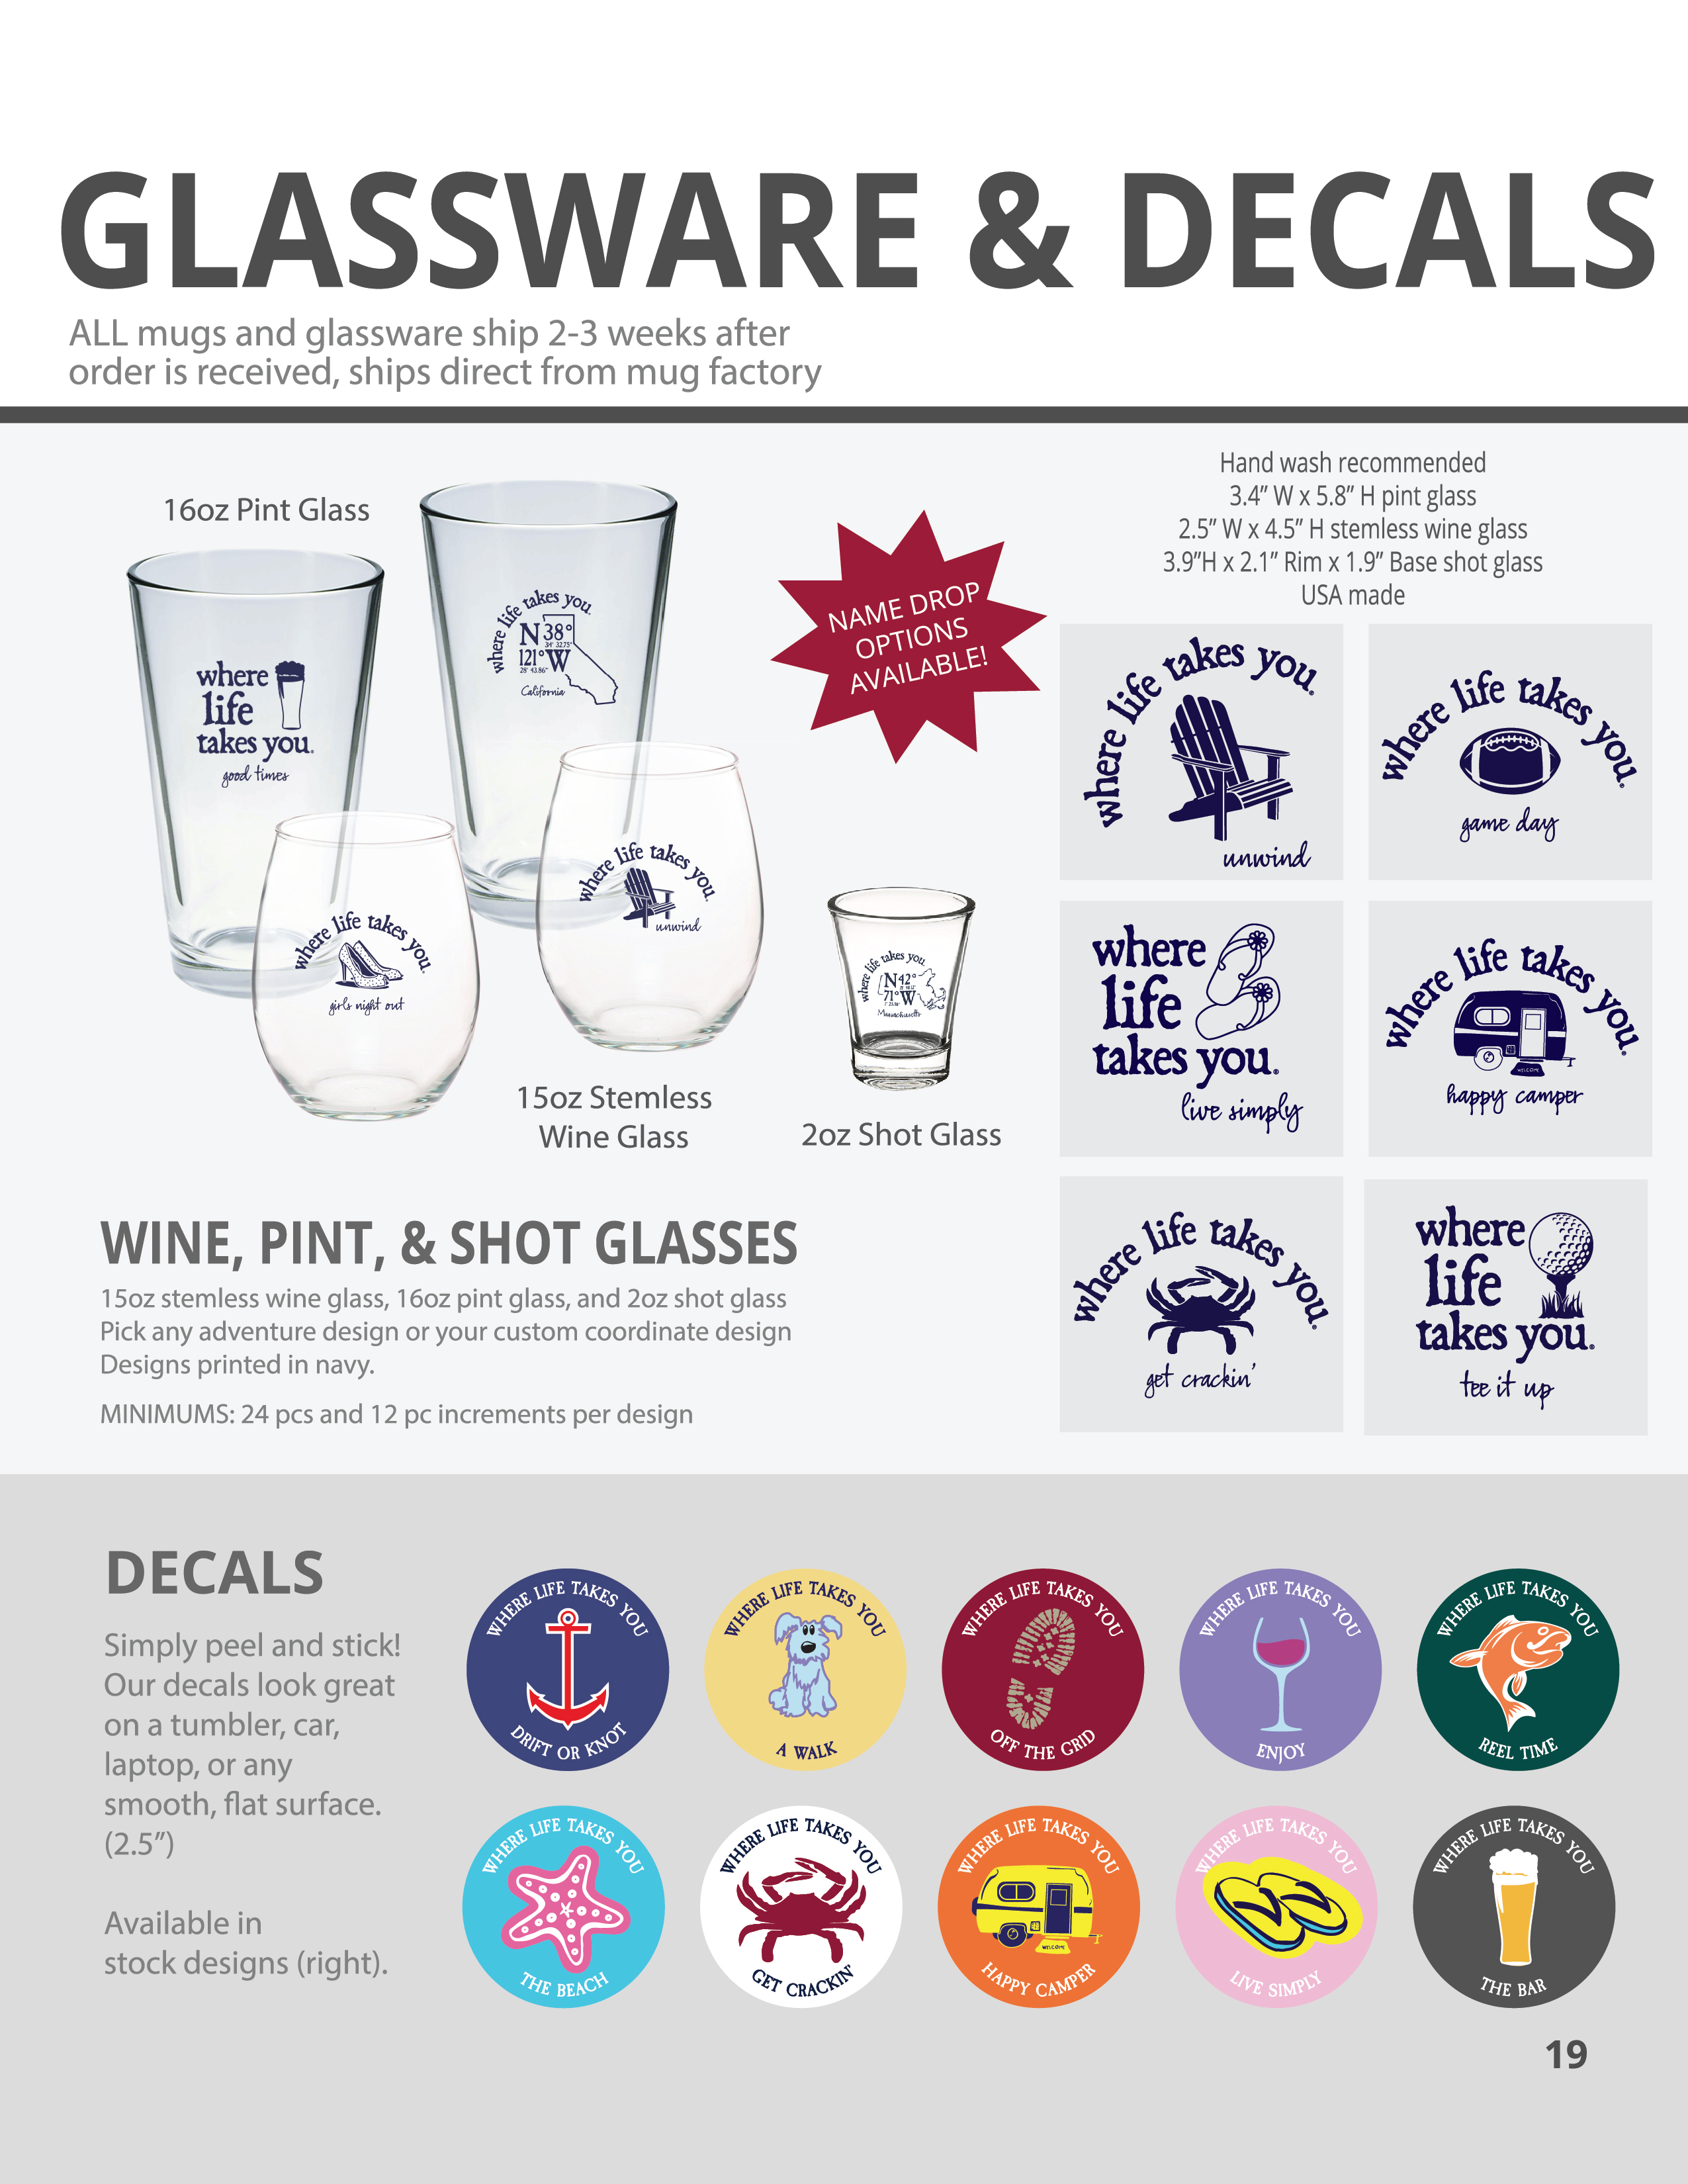 19-mugs-glassware-decals-01.jpg